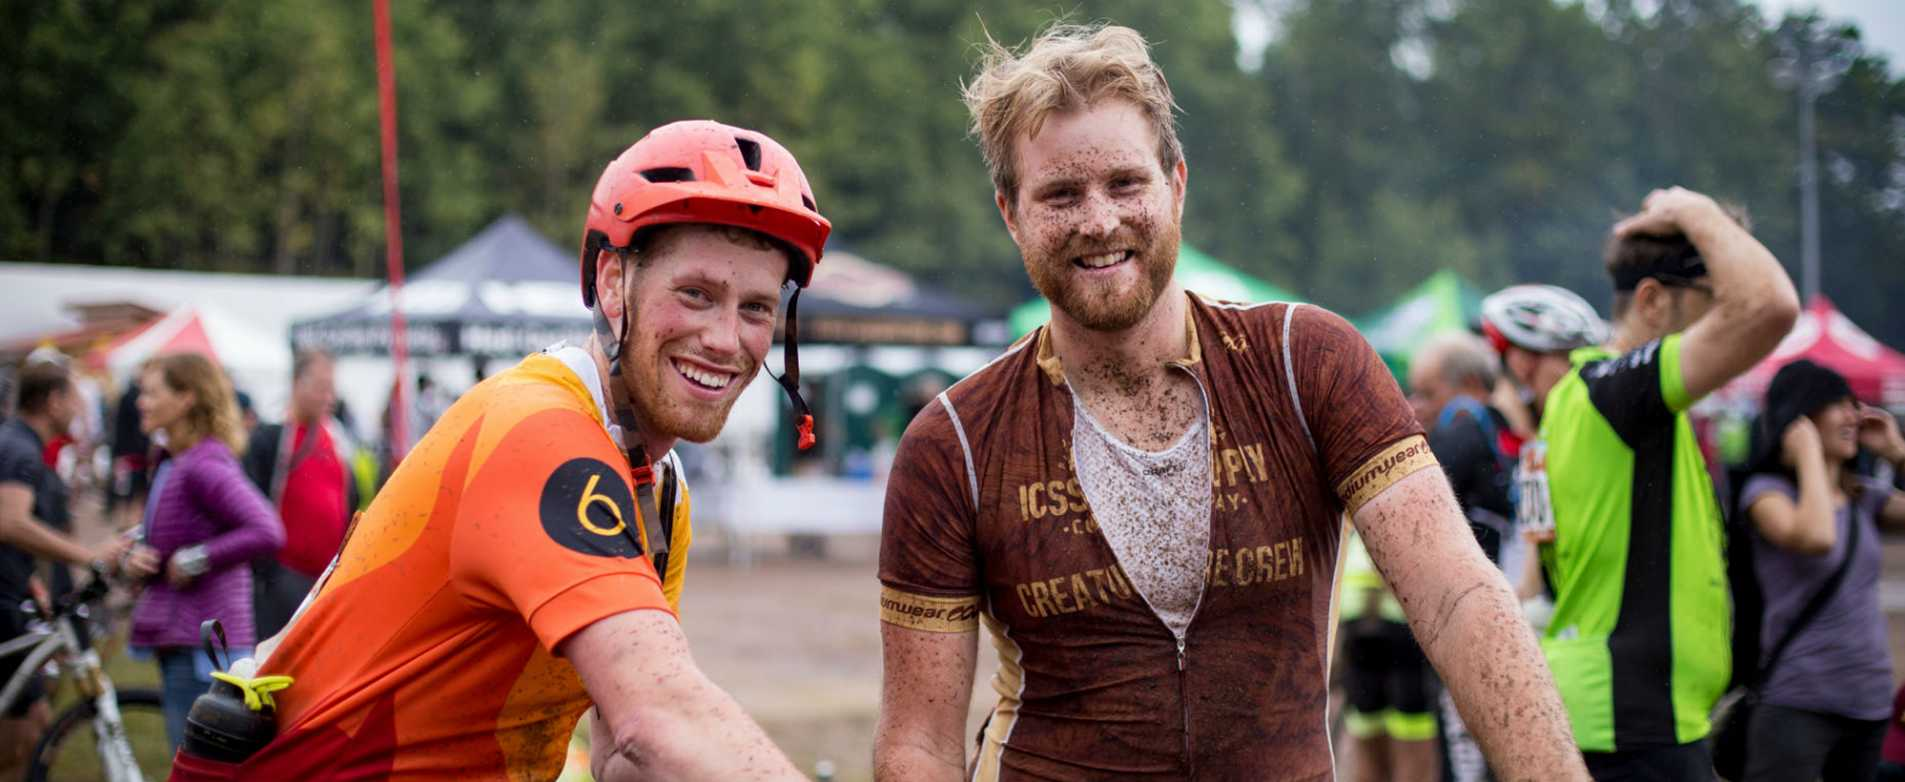 Muddy Race Finishers at Chequamegon Fat Tire Bike Festival